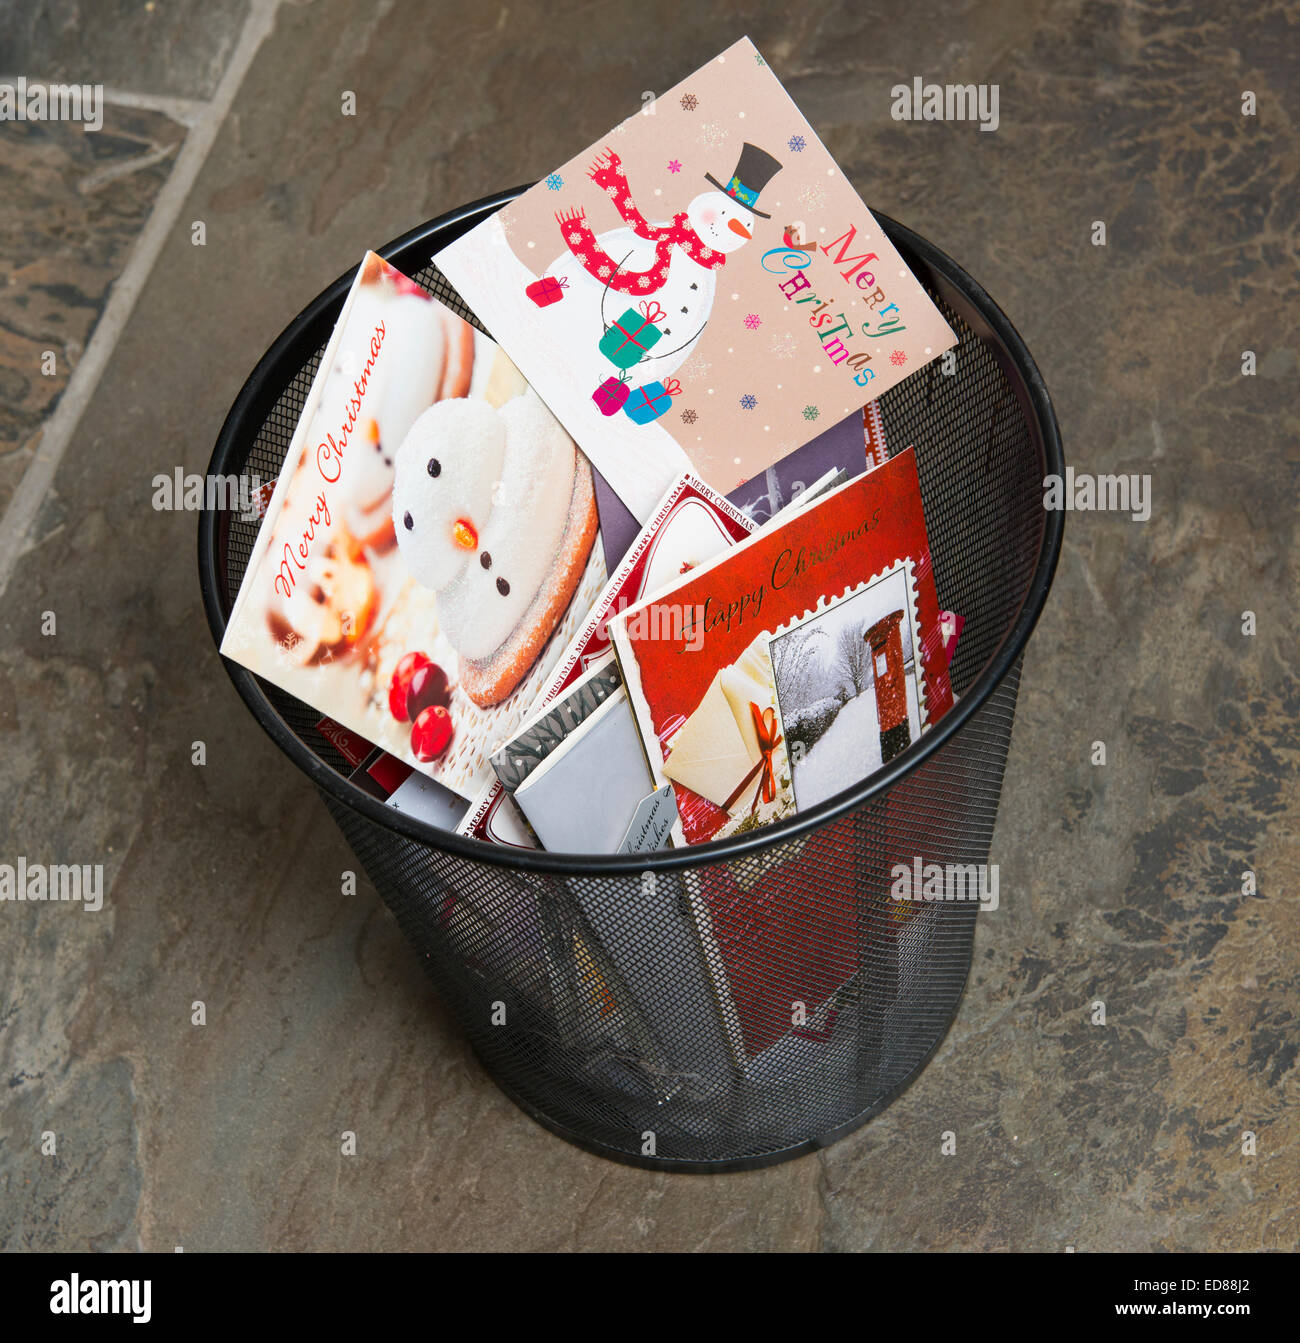 Old Christmas cards in a rubbish bin Stock Photo: 77014394 - Alamy